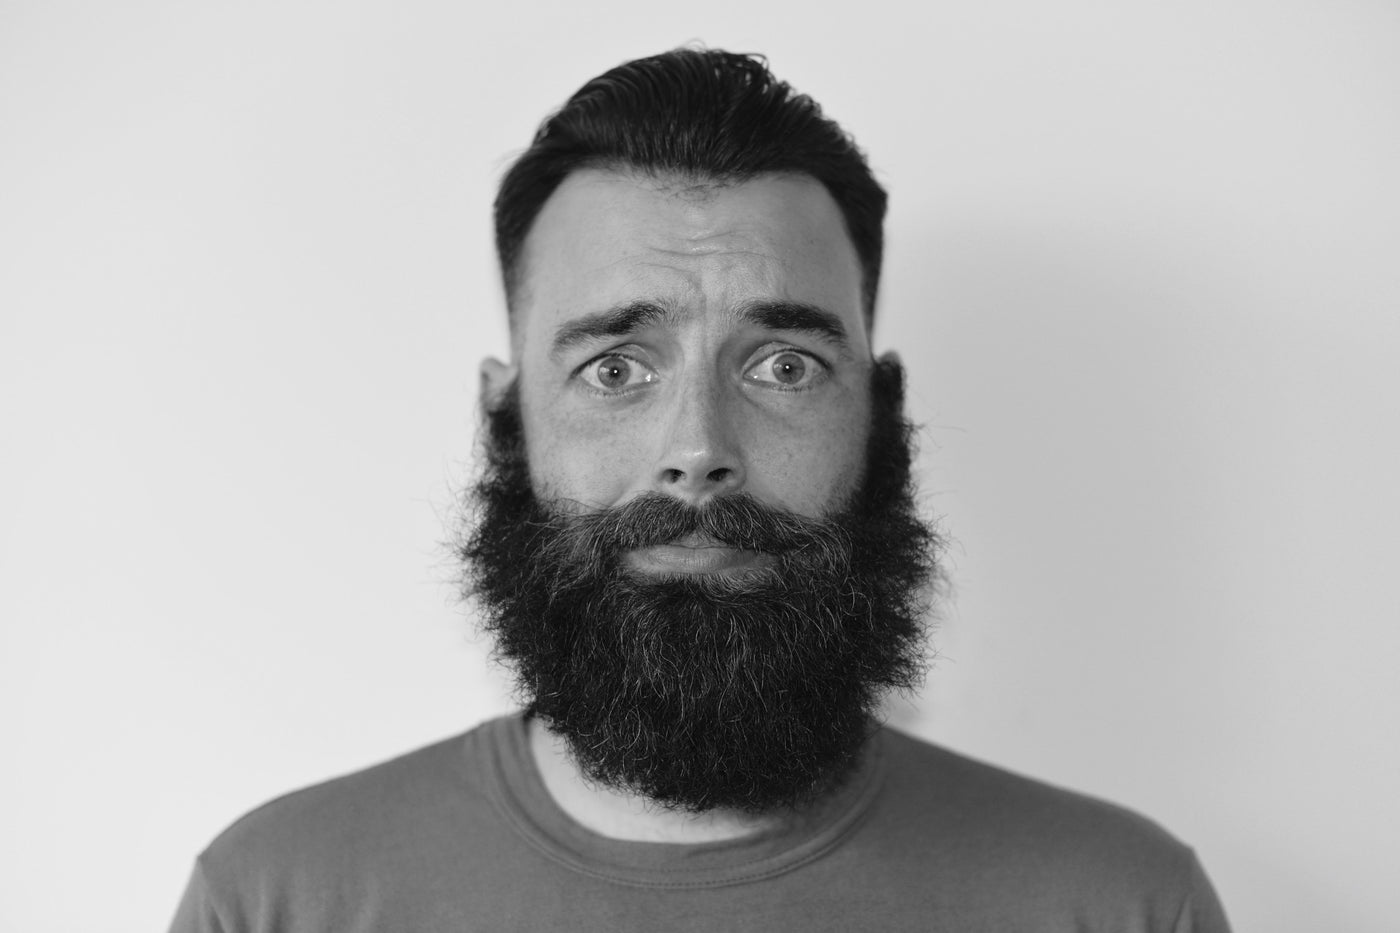 Neglecting To Trim Your Beard